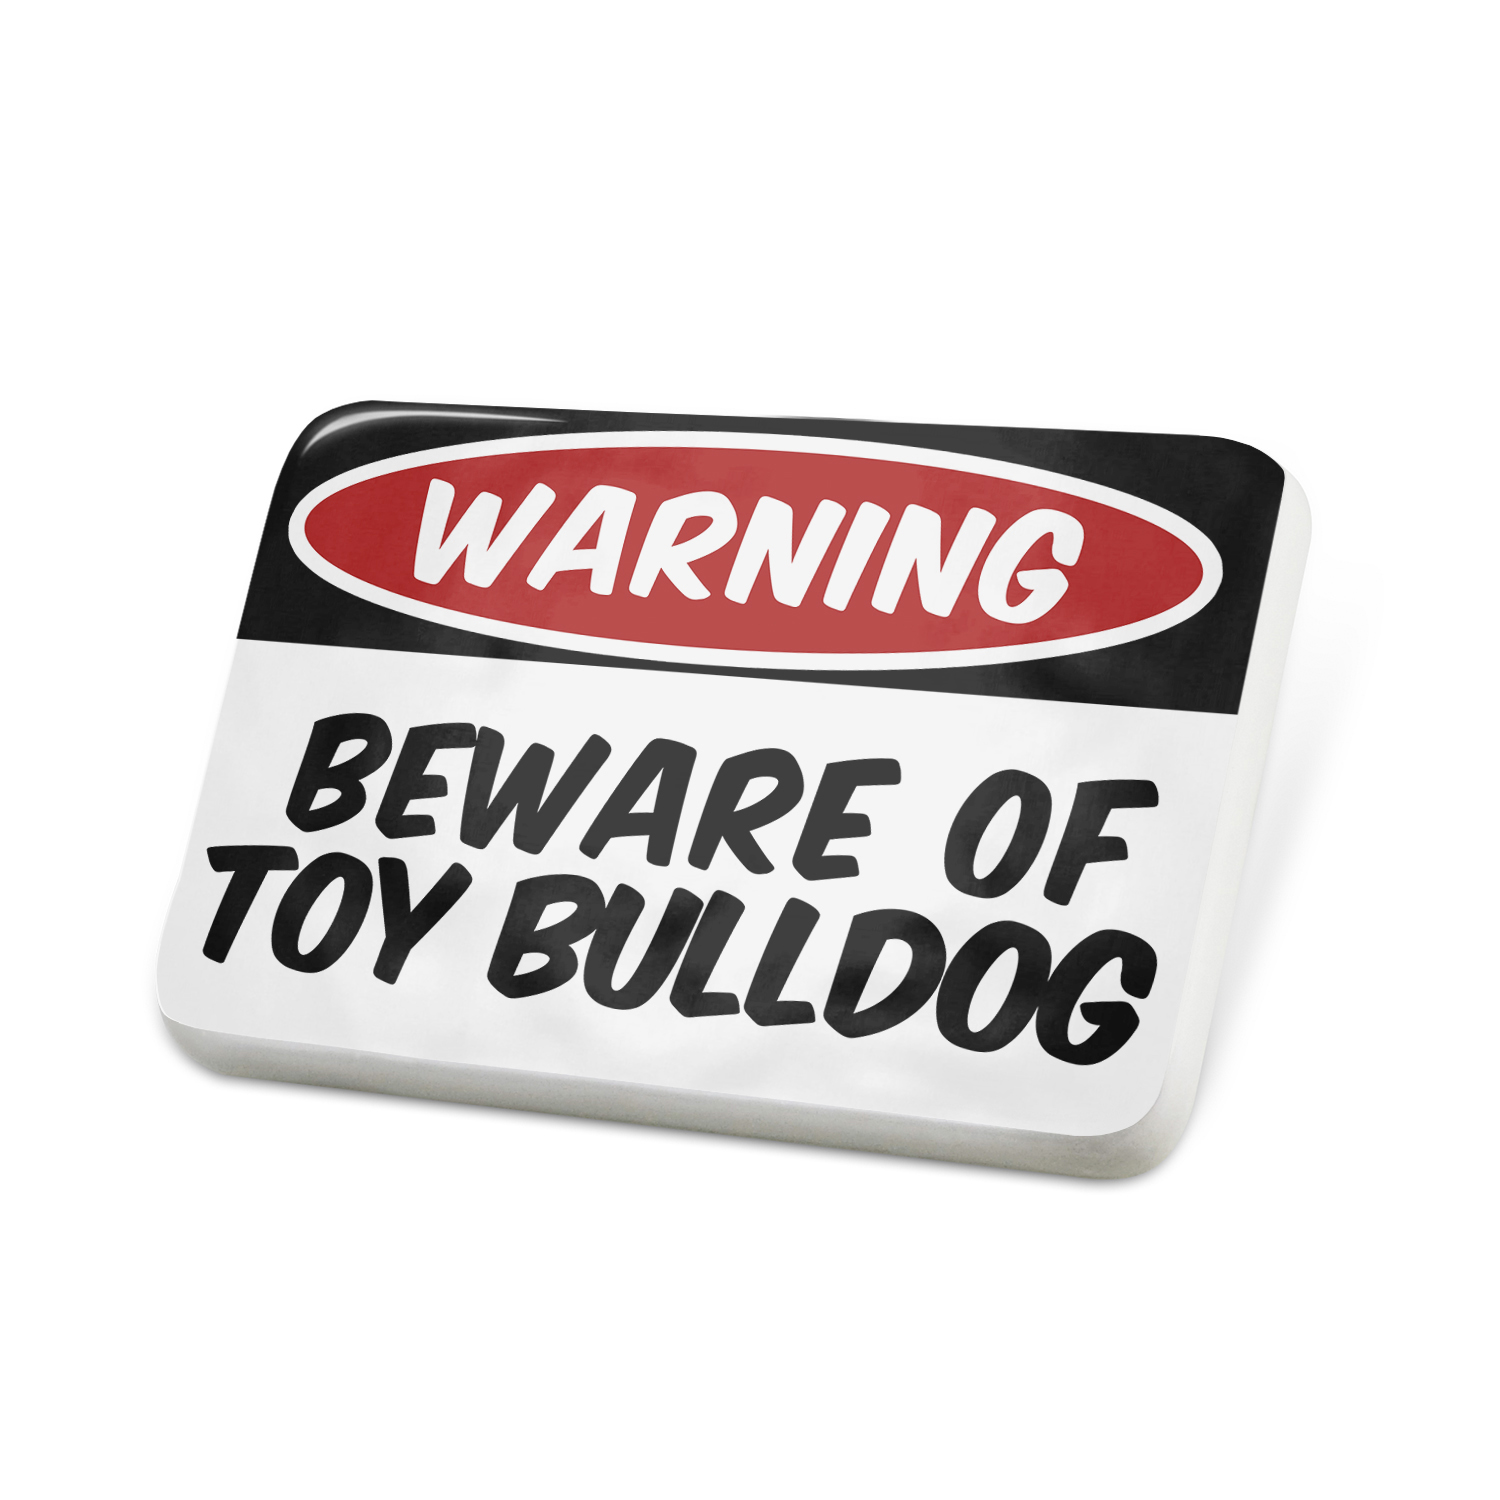 Porcelein Pin Beware of the Toy BullDog from Lapel Badge – NEONBLOND